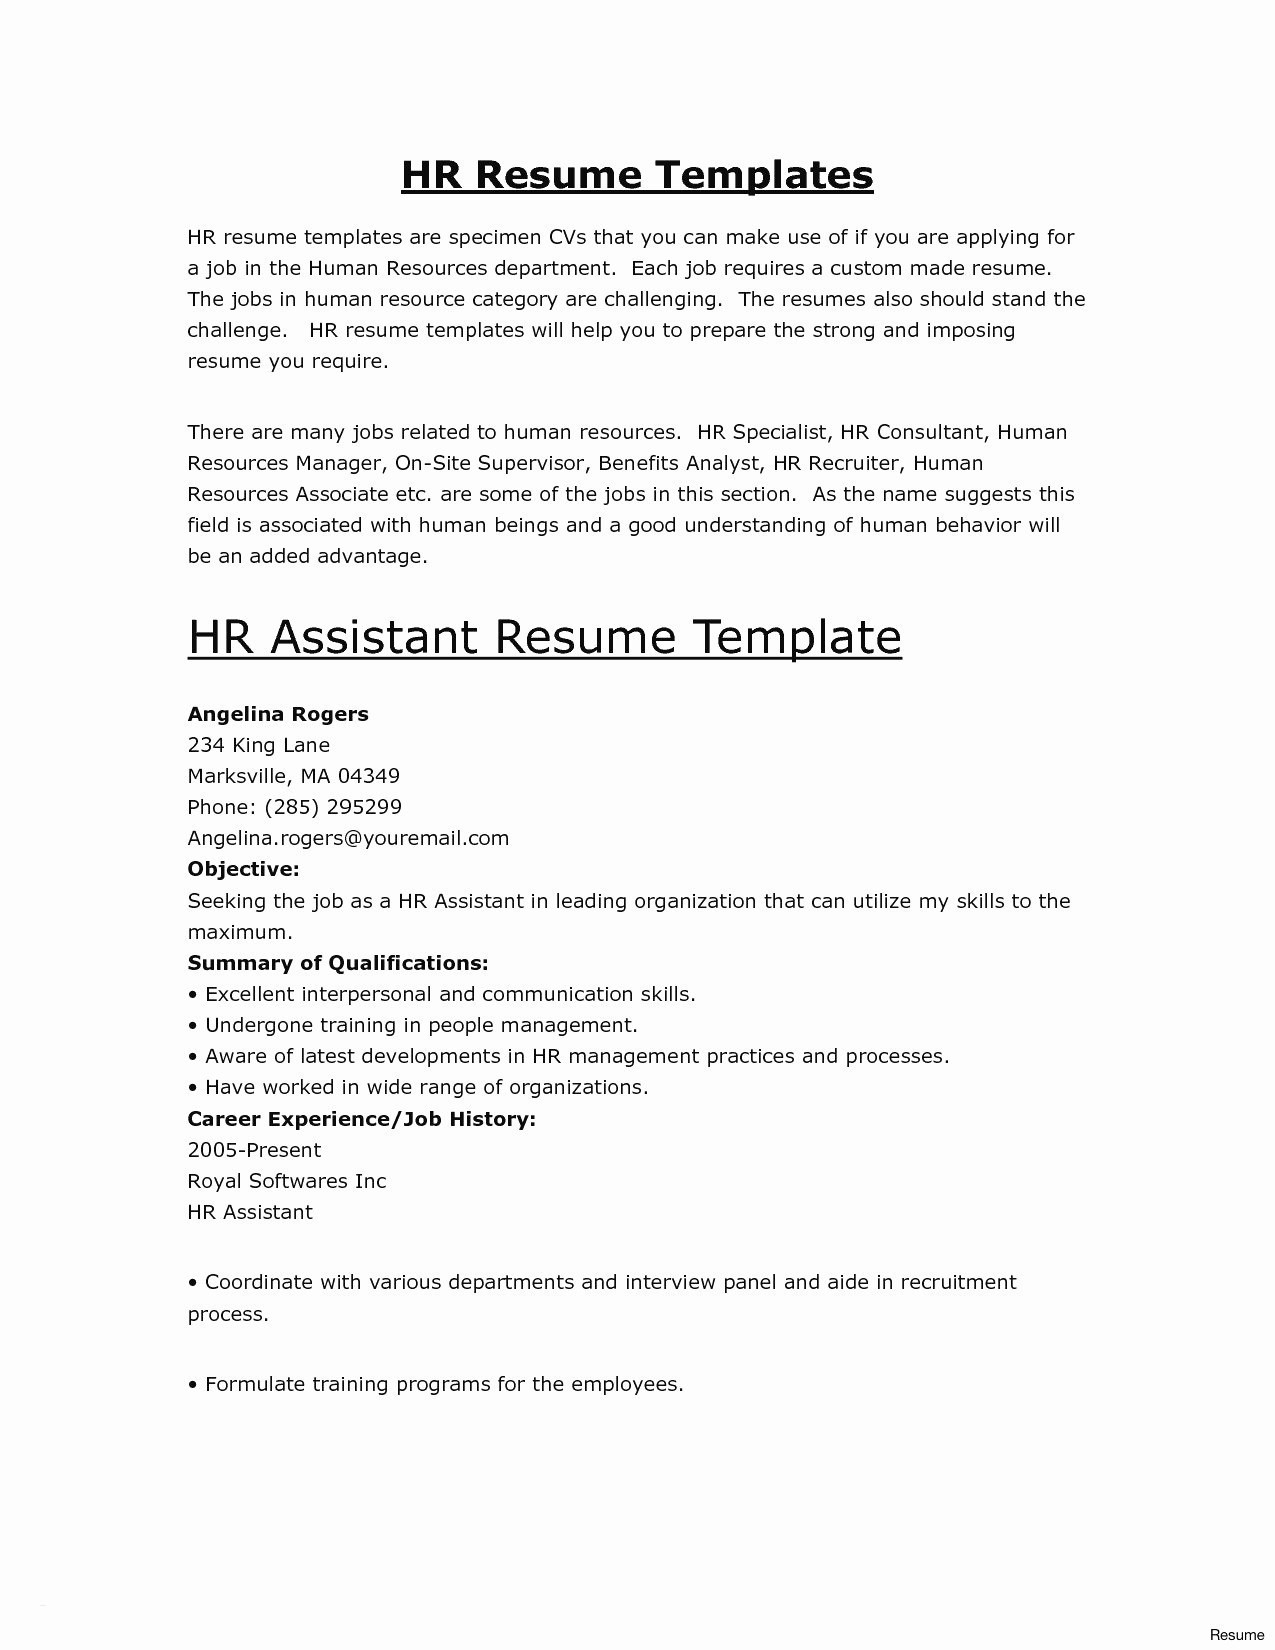 self employed resume template Collection-Self Employed Resume New Luxury Examples Resumes Ecologist Resume 0d Information 7-o